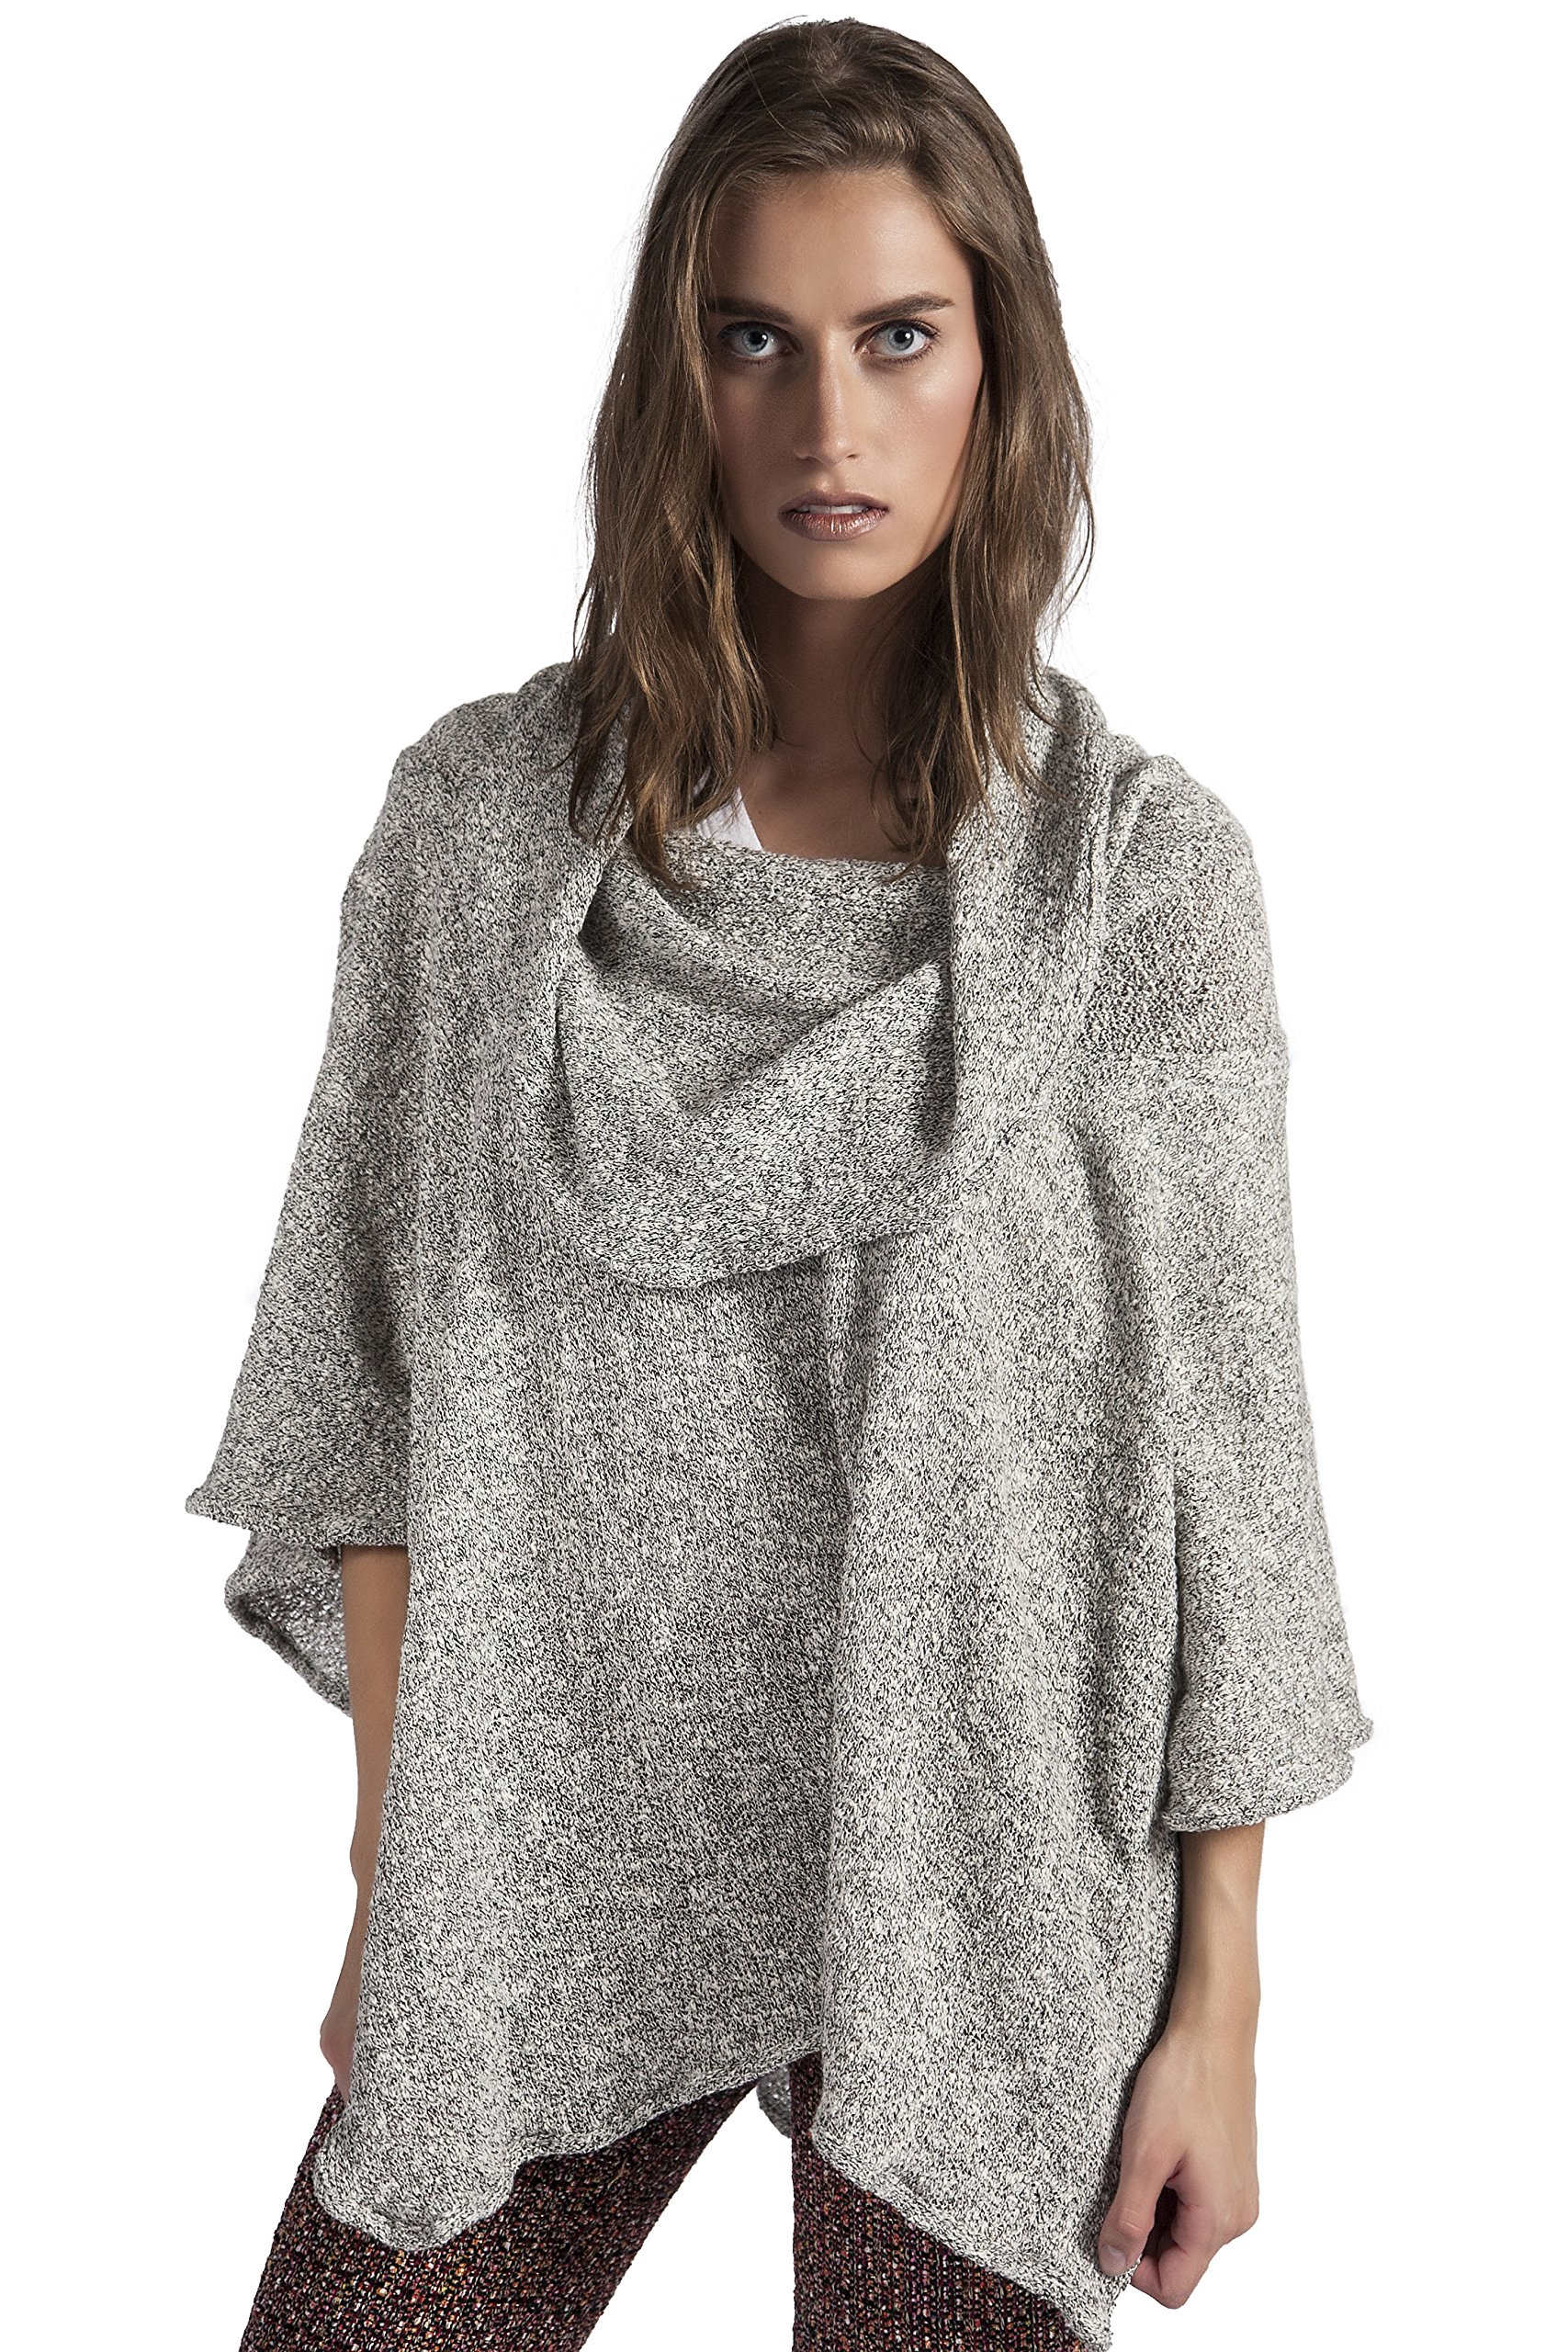 HOODIE PONCH Heidi Hess Designer Poncho Sweater Converts Into Scarf, Hoodie or Top - Soft Gray, One Size